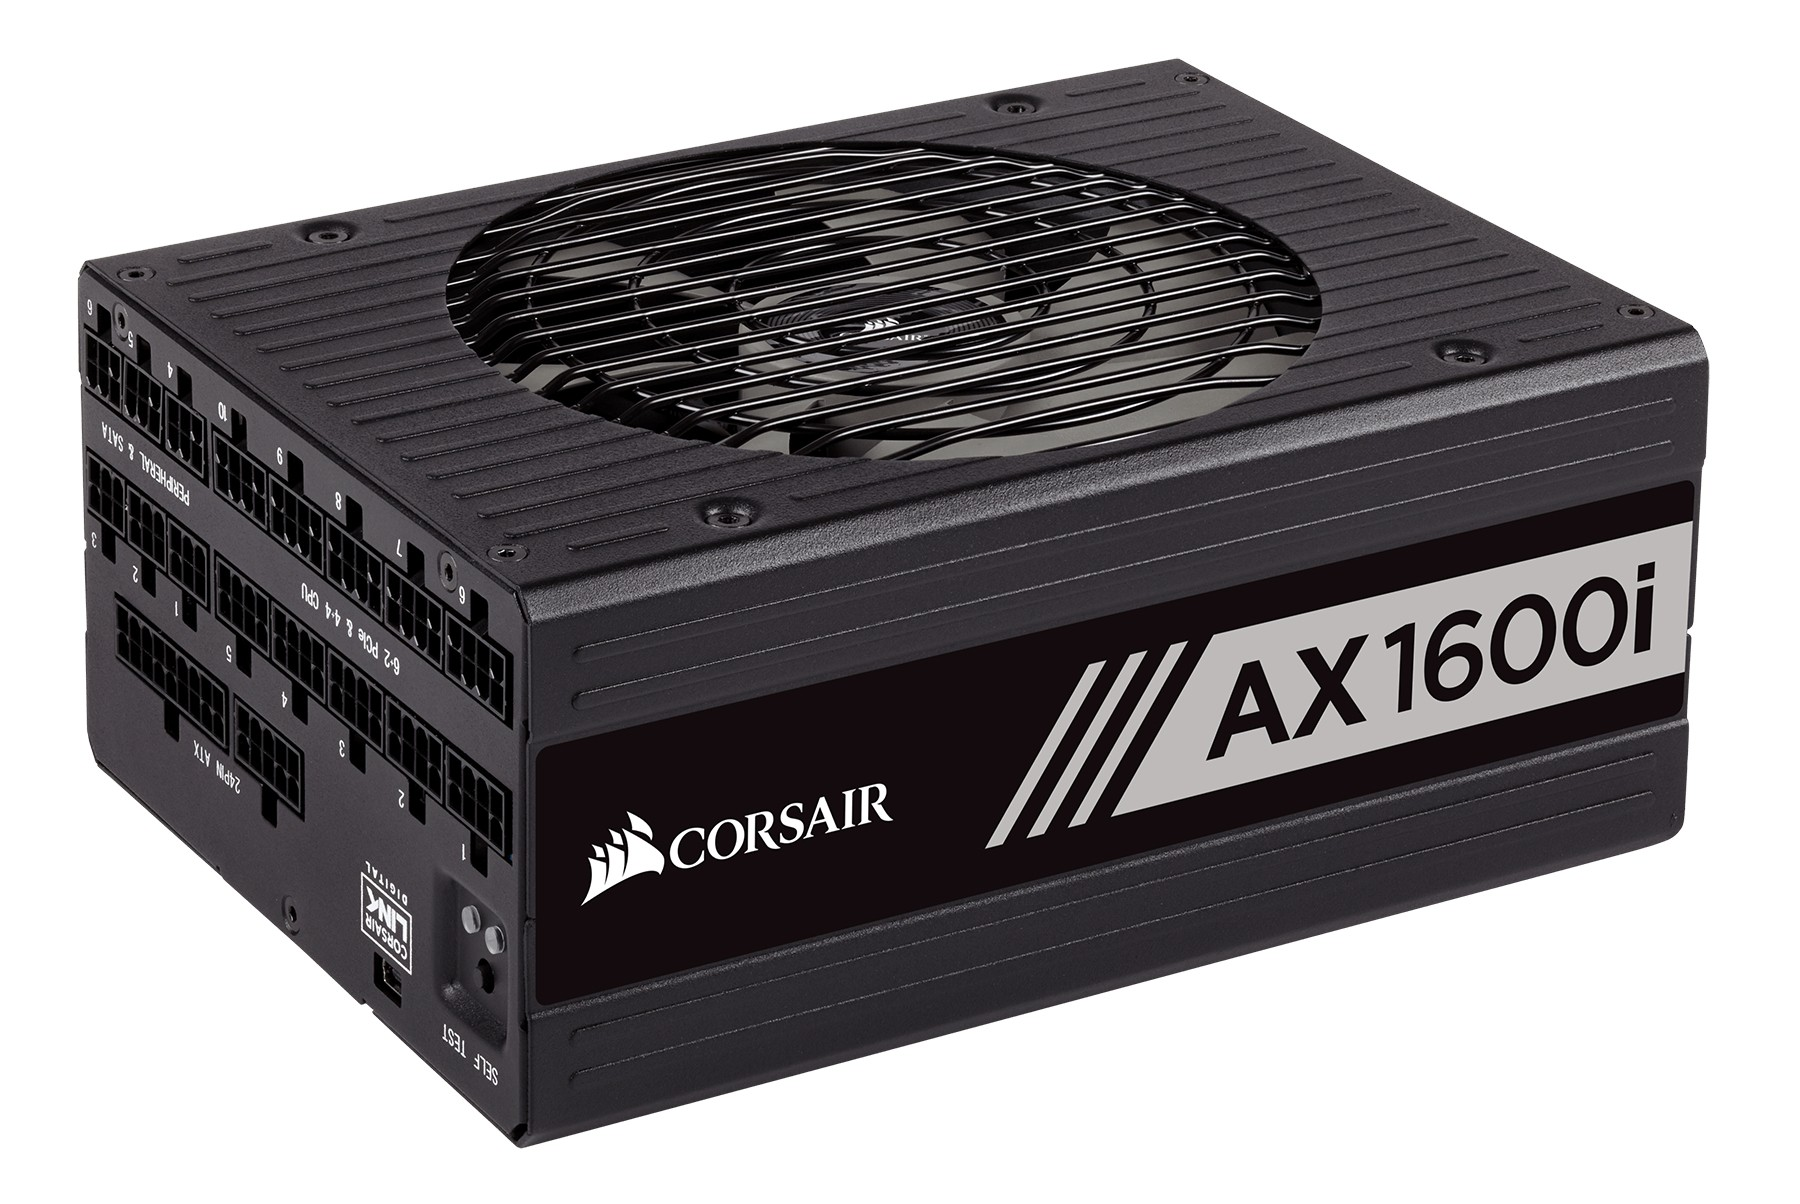 CORSAIR AX1600i Digital